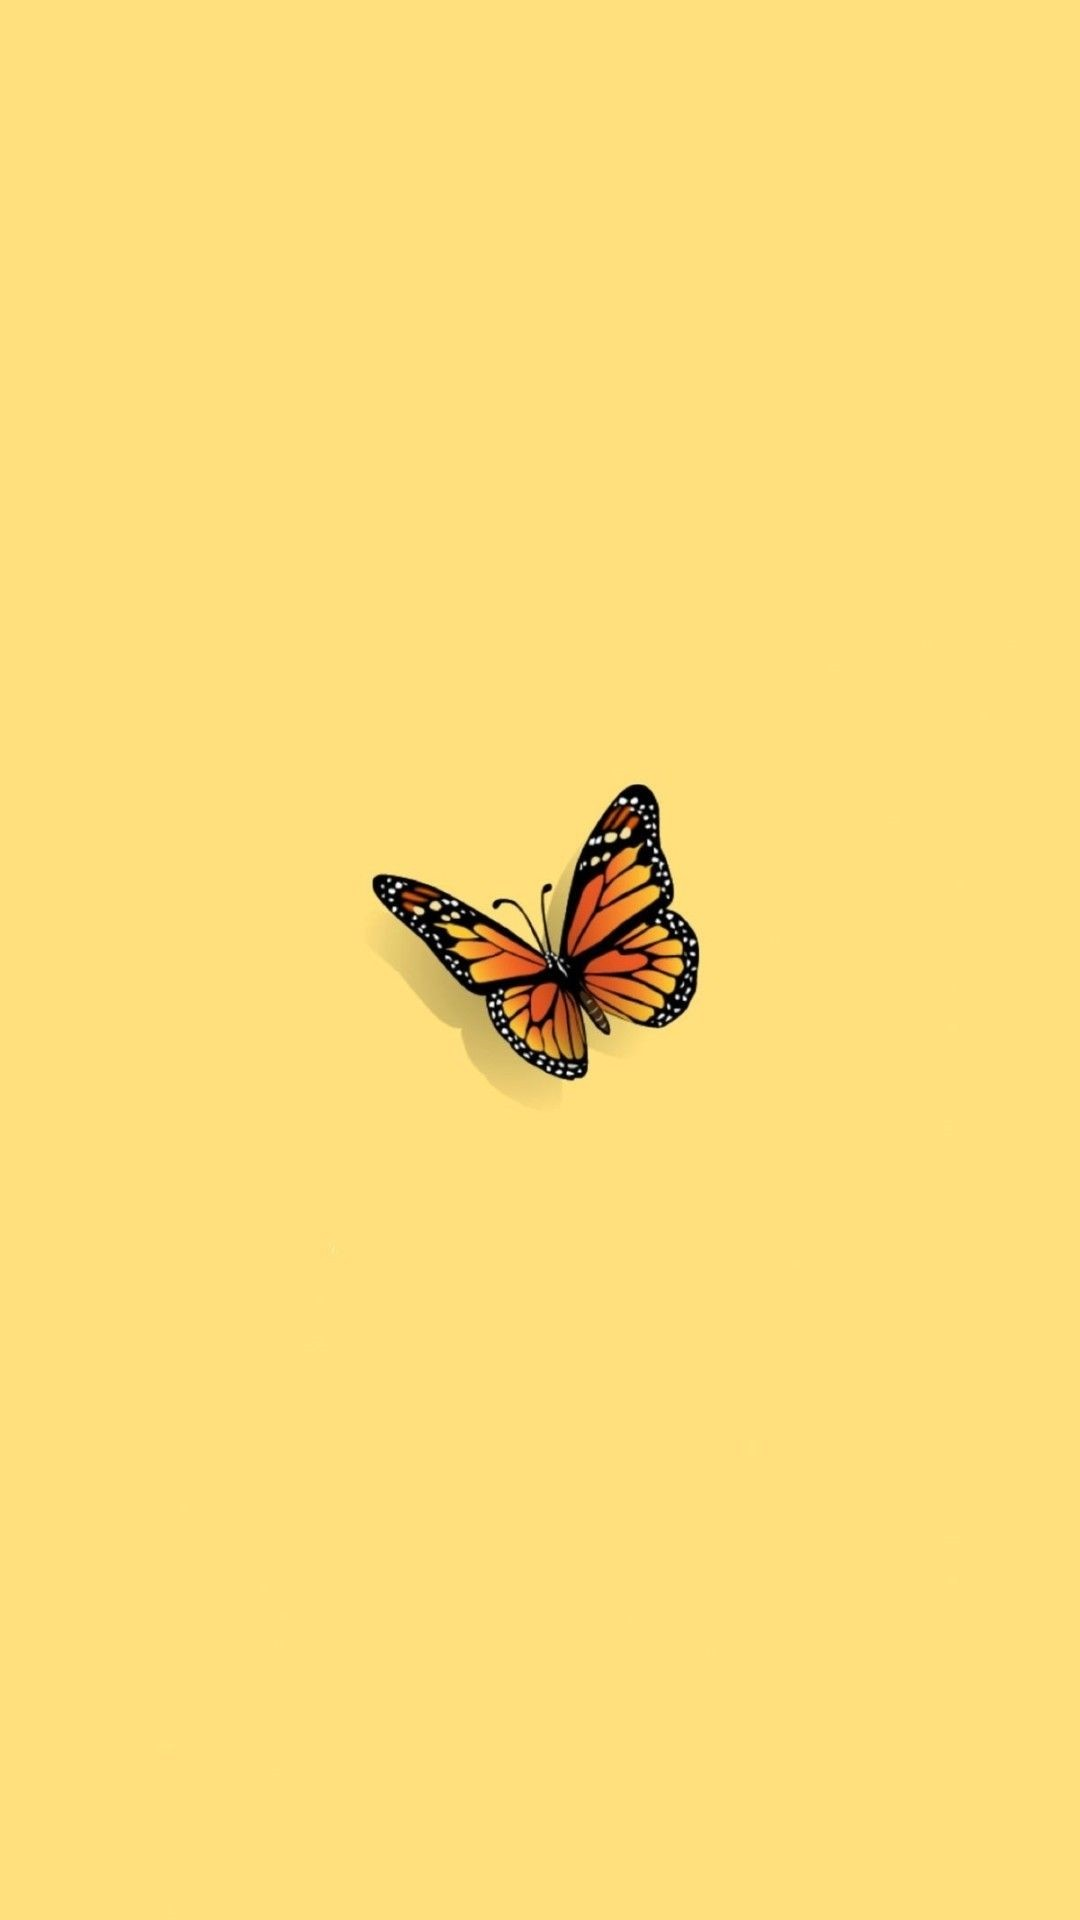 Aesthetic Butterfly ios wallpaper